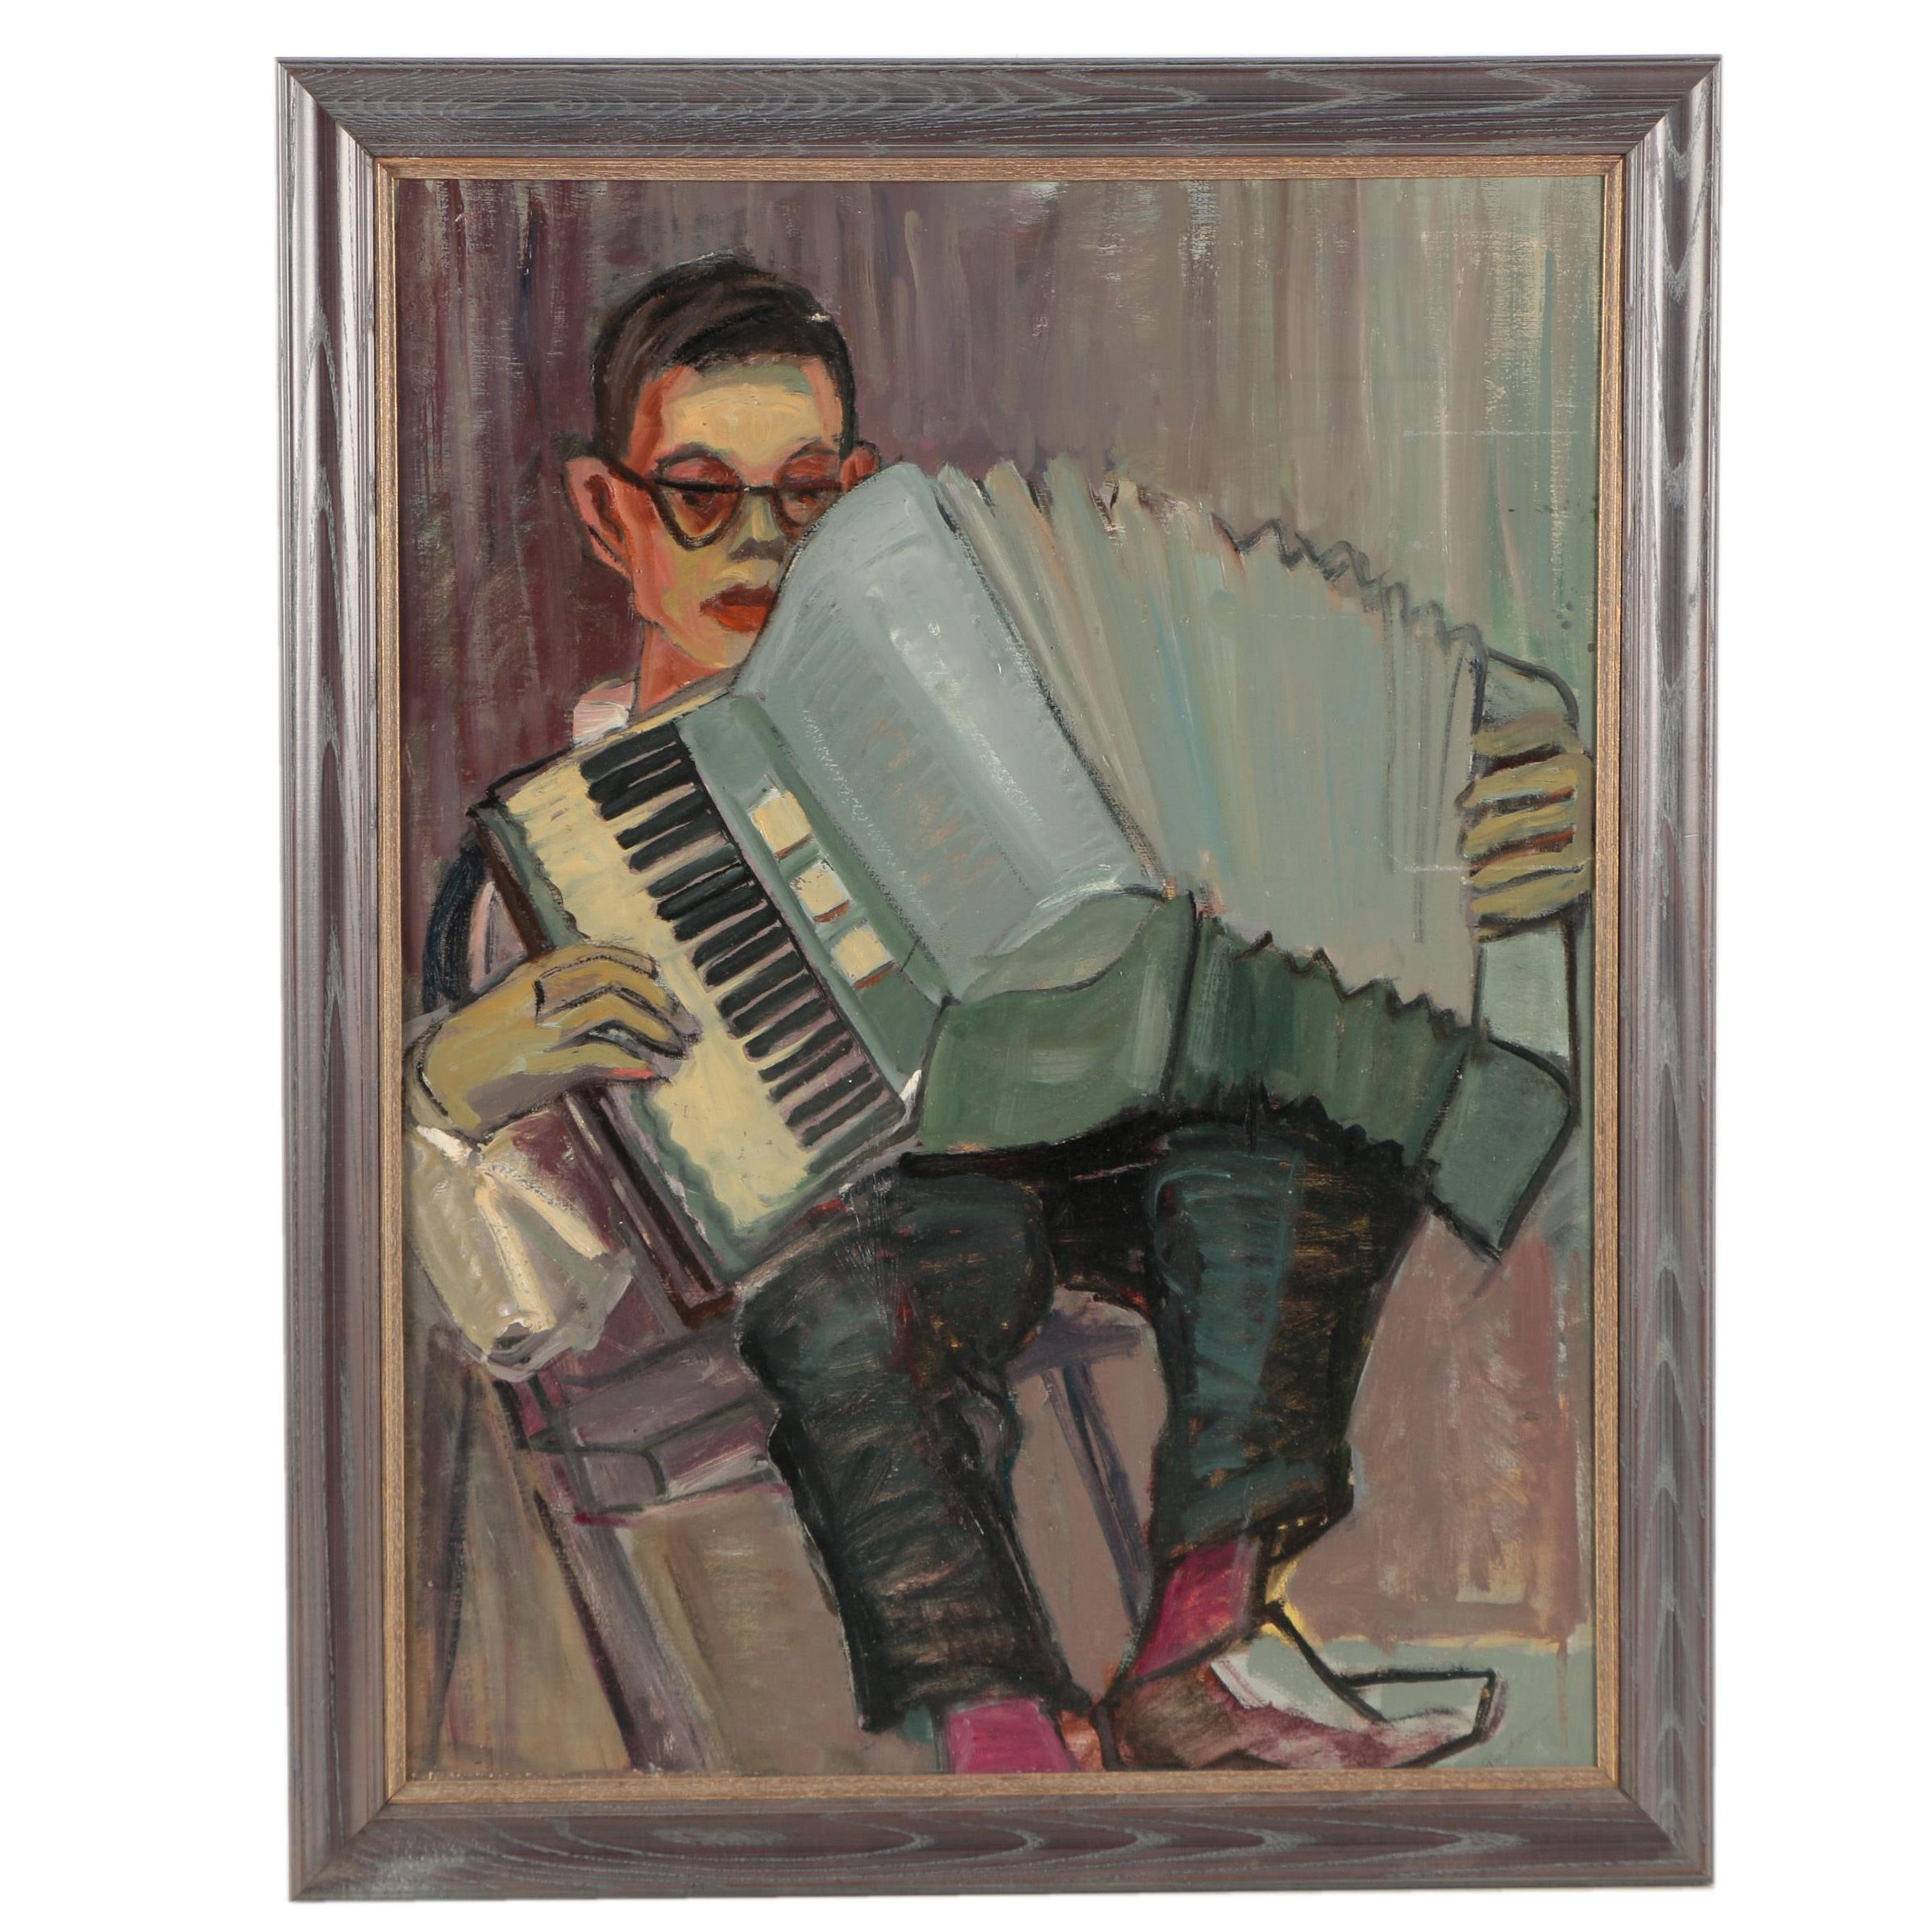 Pestow Oil Painting of a Young Man and Accordion on Canvas Board